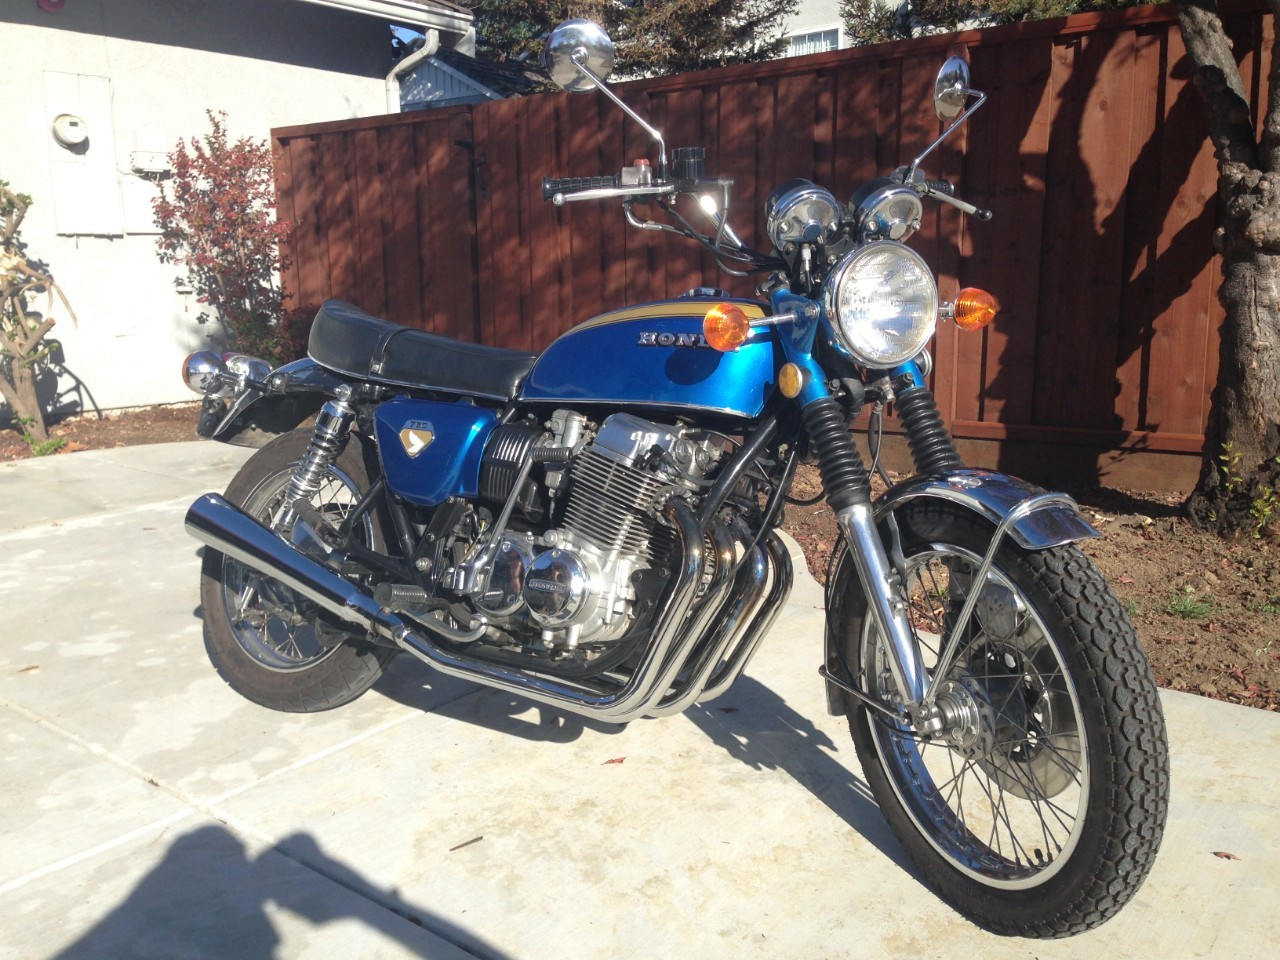 CB360 For Sale - Honda Classic / Vintage Motorcycles - Cycle